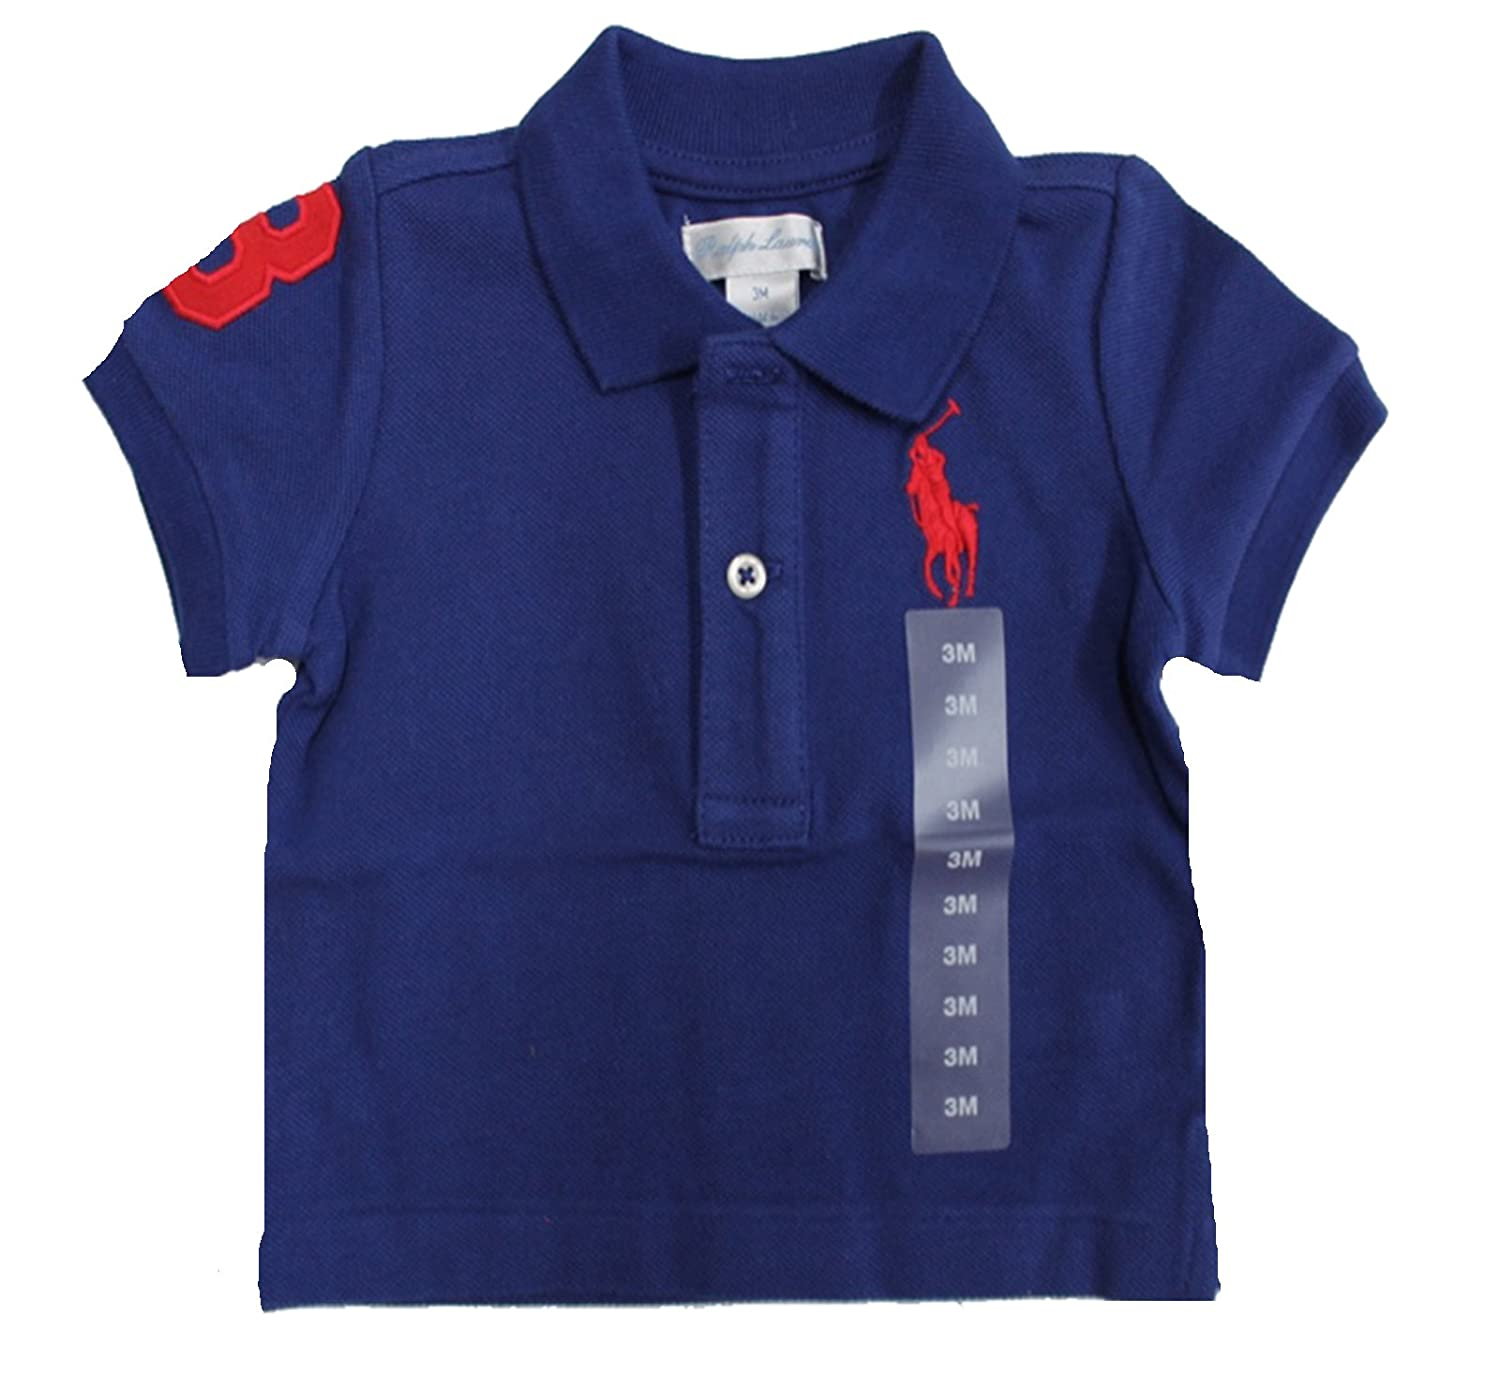 Ralph Lauren Baby Boys Big Pony Polo T Shirt (6M)